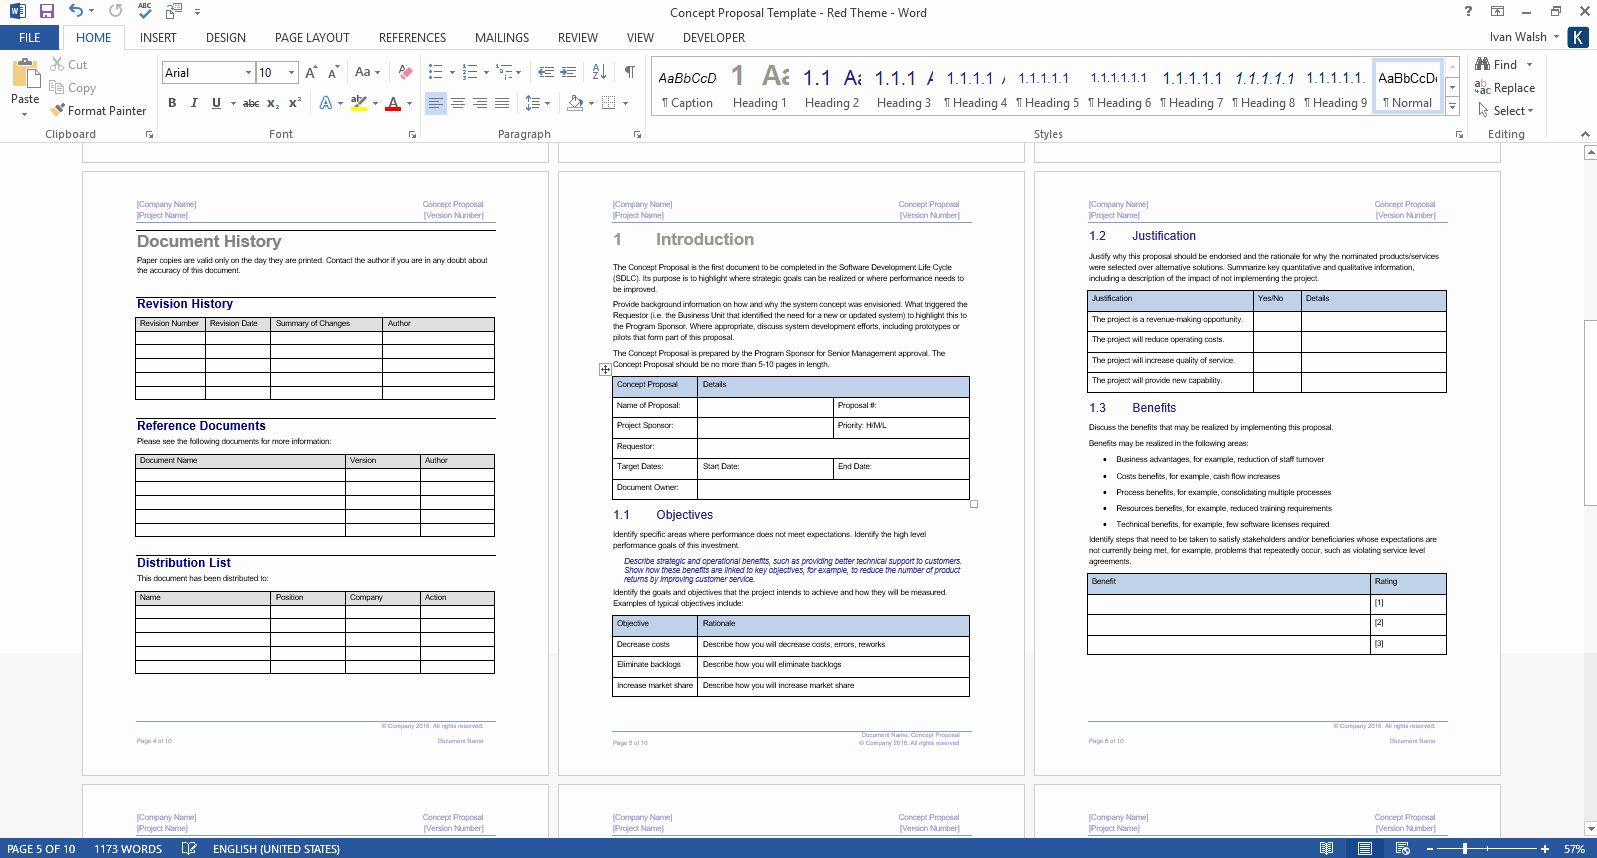 Free Microsoft Word Templates Elegant Concept Proposal Template Ms Word Excel Spreadsheet Proposal Templates Microsoft Word Templates Project Proposal Template Project outline template microsoft word